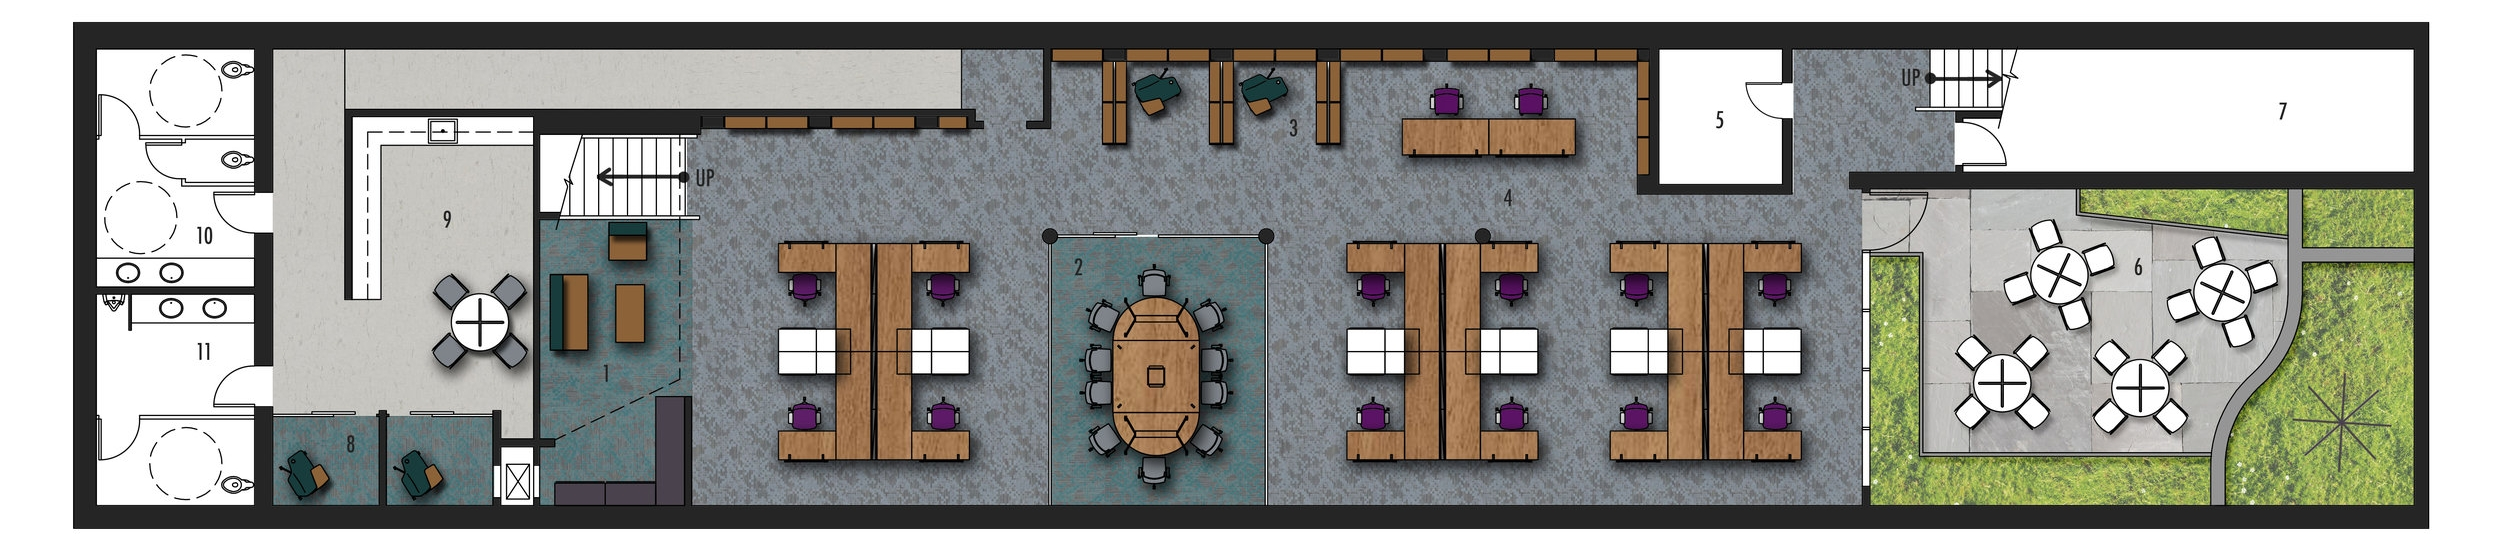 Lower Level Floor Plan   1.Seating & Filing Print Area 2.Conference Room 3.Seating Alcove 4.Open Workspace 5.Storage 6.Courtyard 7.Mechanical Room 8.Soundproof Room 9.Kitchen 10.Womens' Restroom 11.Mens' Restroom